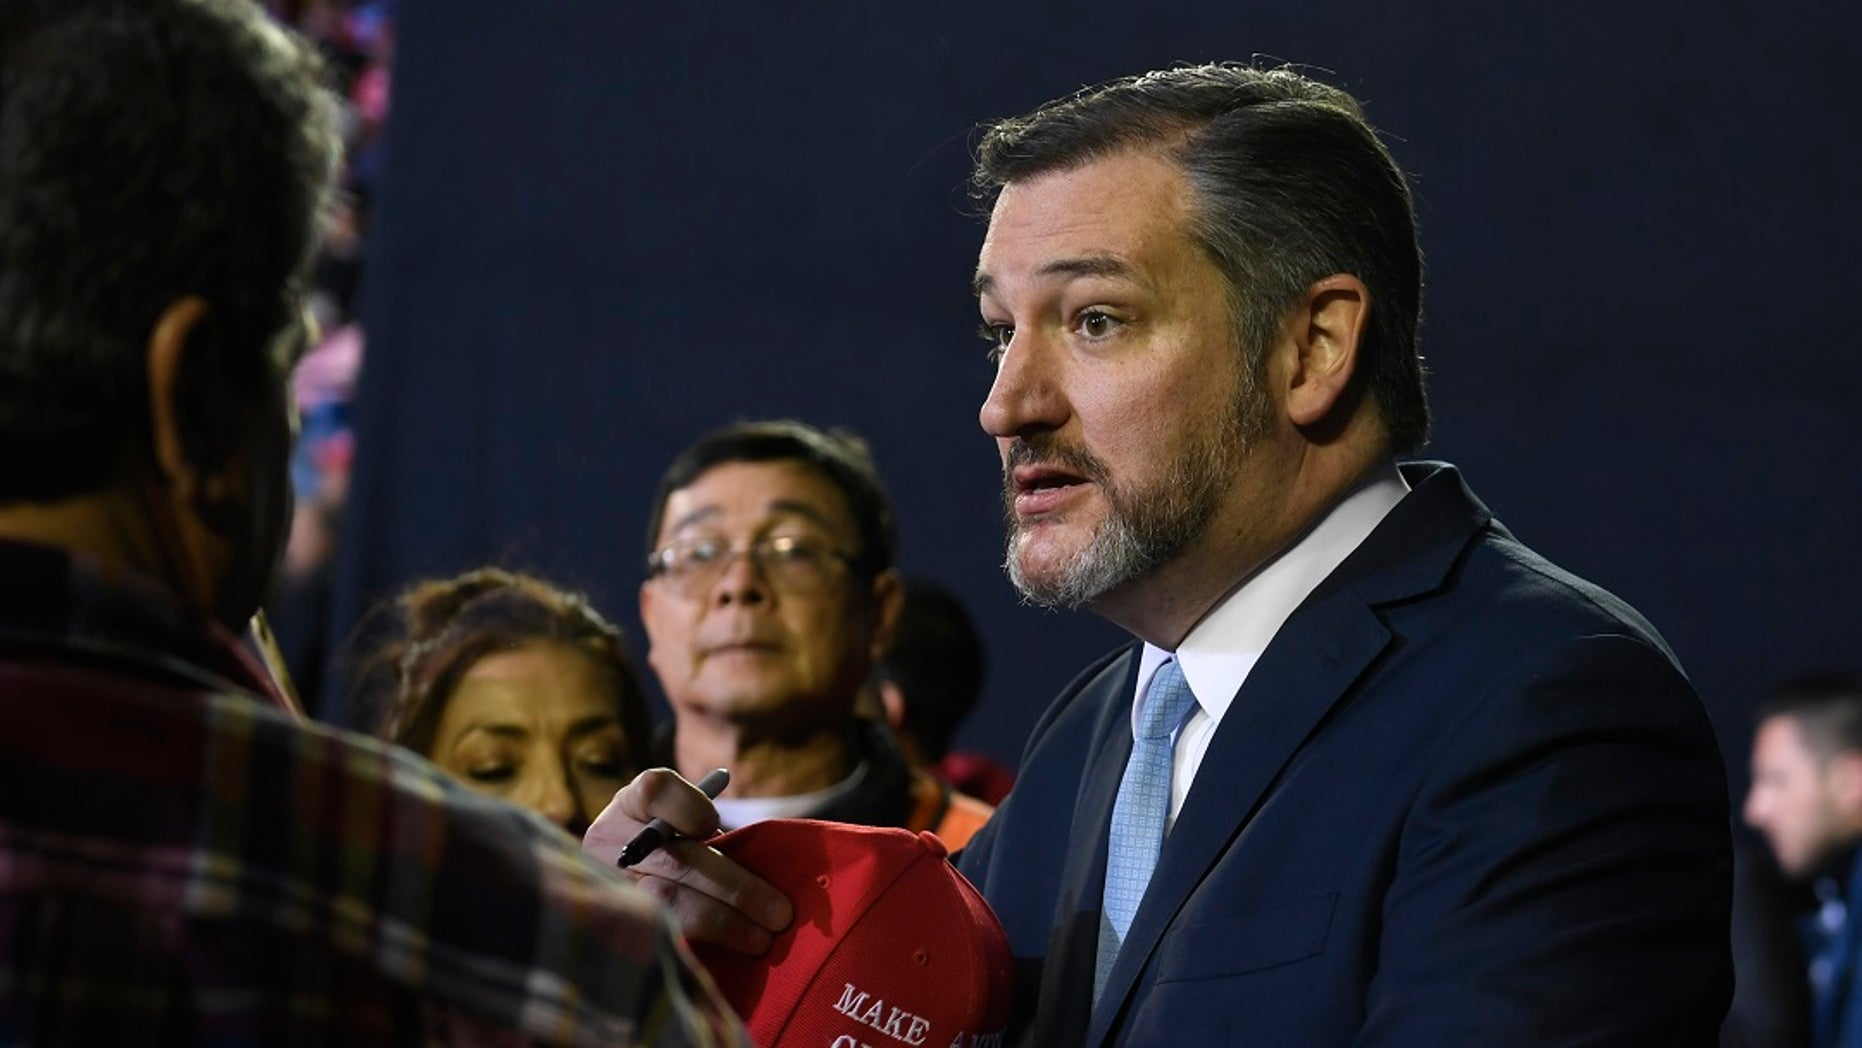 Sen. Ted Cruz, R-Texas, attends a rally with President Trump in El Paso in February. (AP Photo/Susan Walsh)